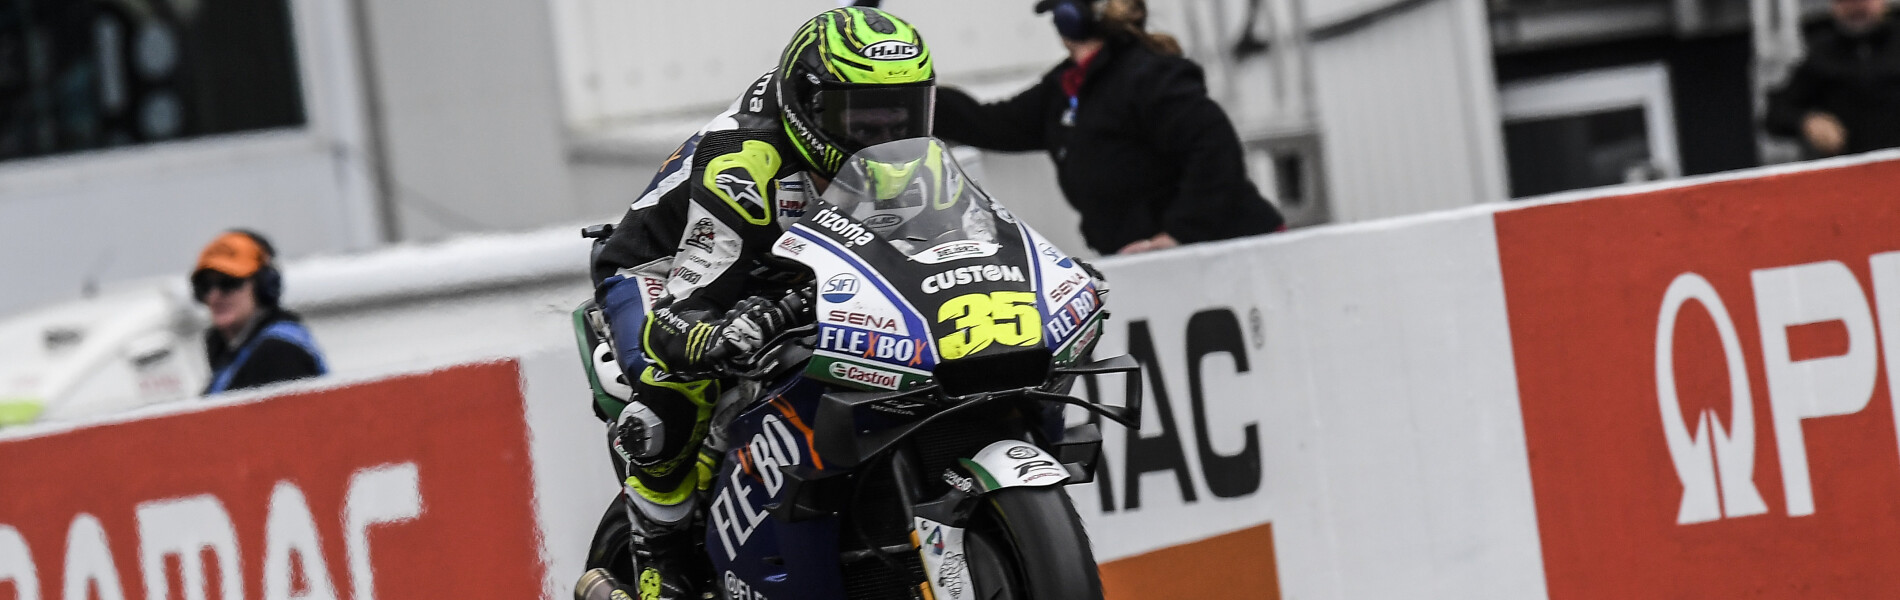 Cal Crutchlow at the 2019 Grand Prix of the Australia